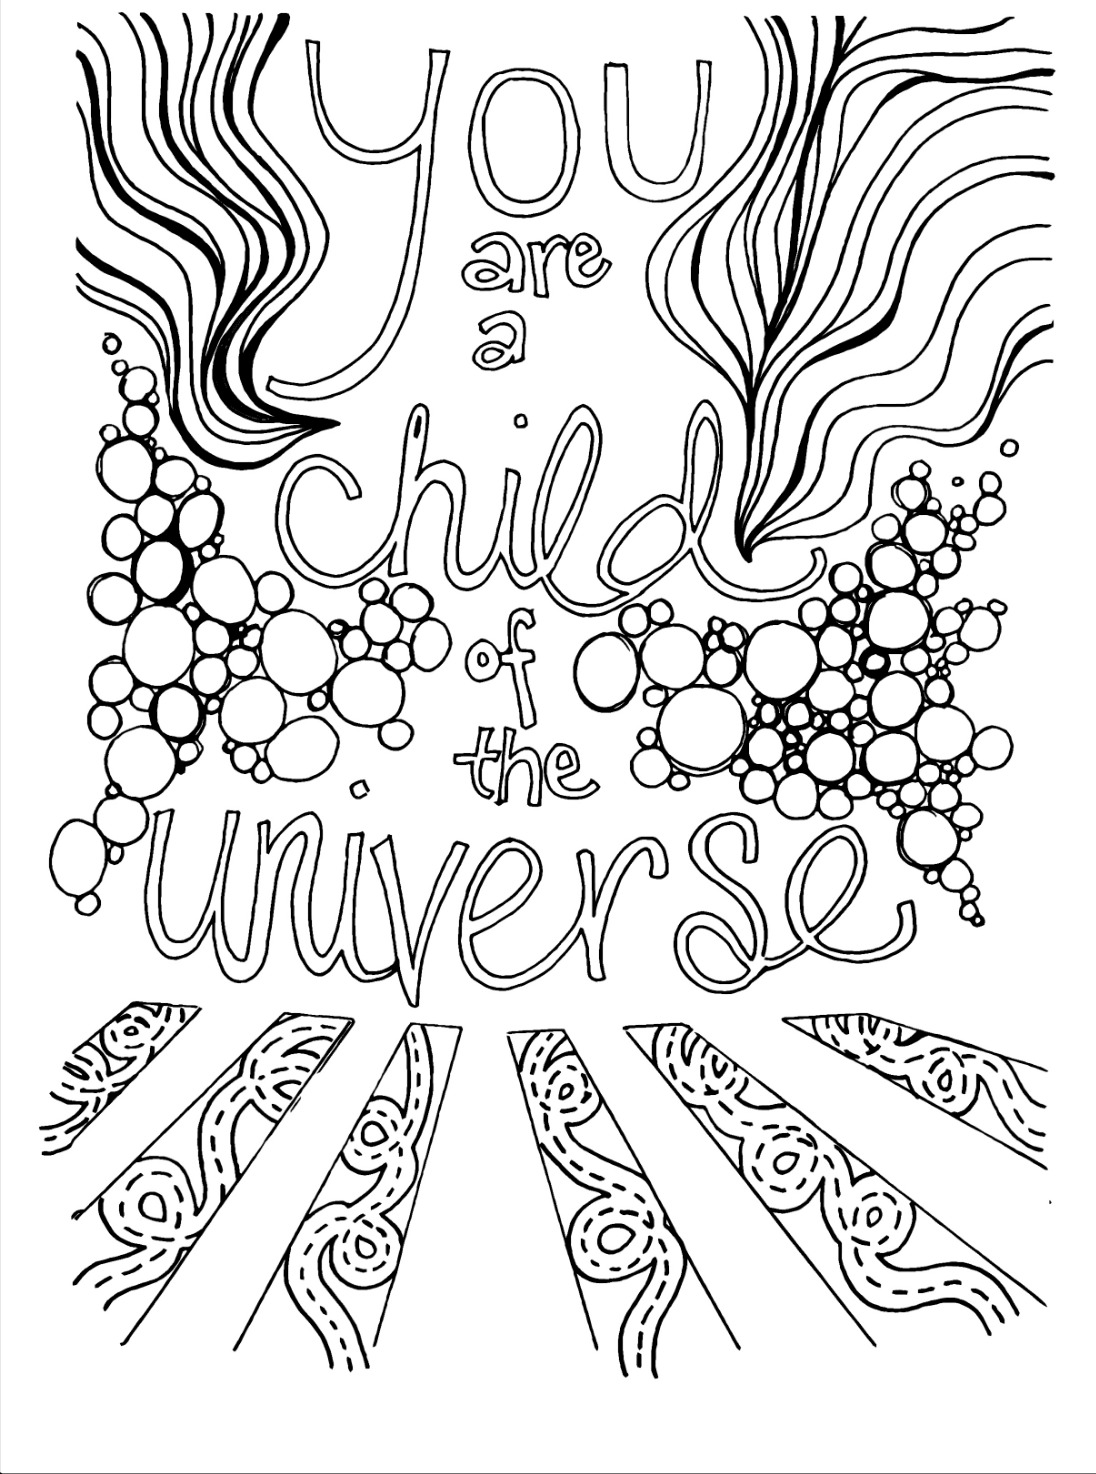 Coloring book page for One Love Yoga